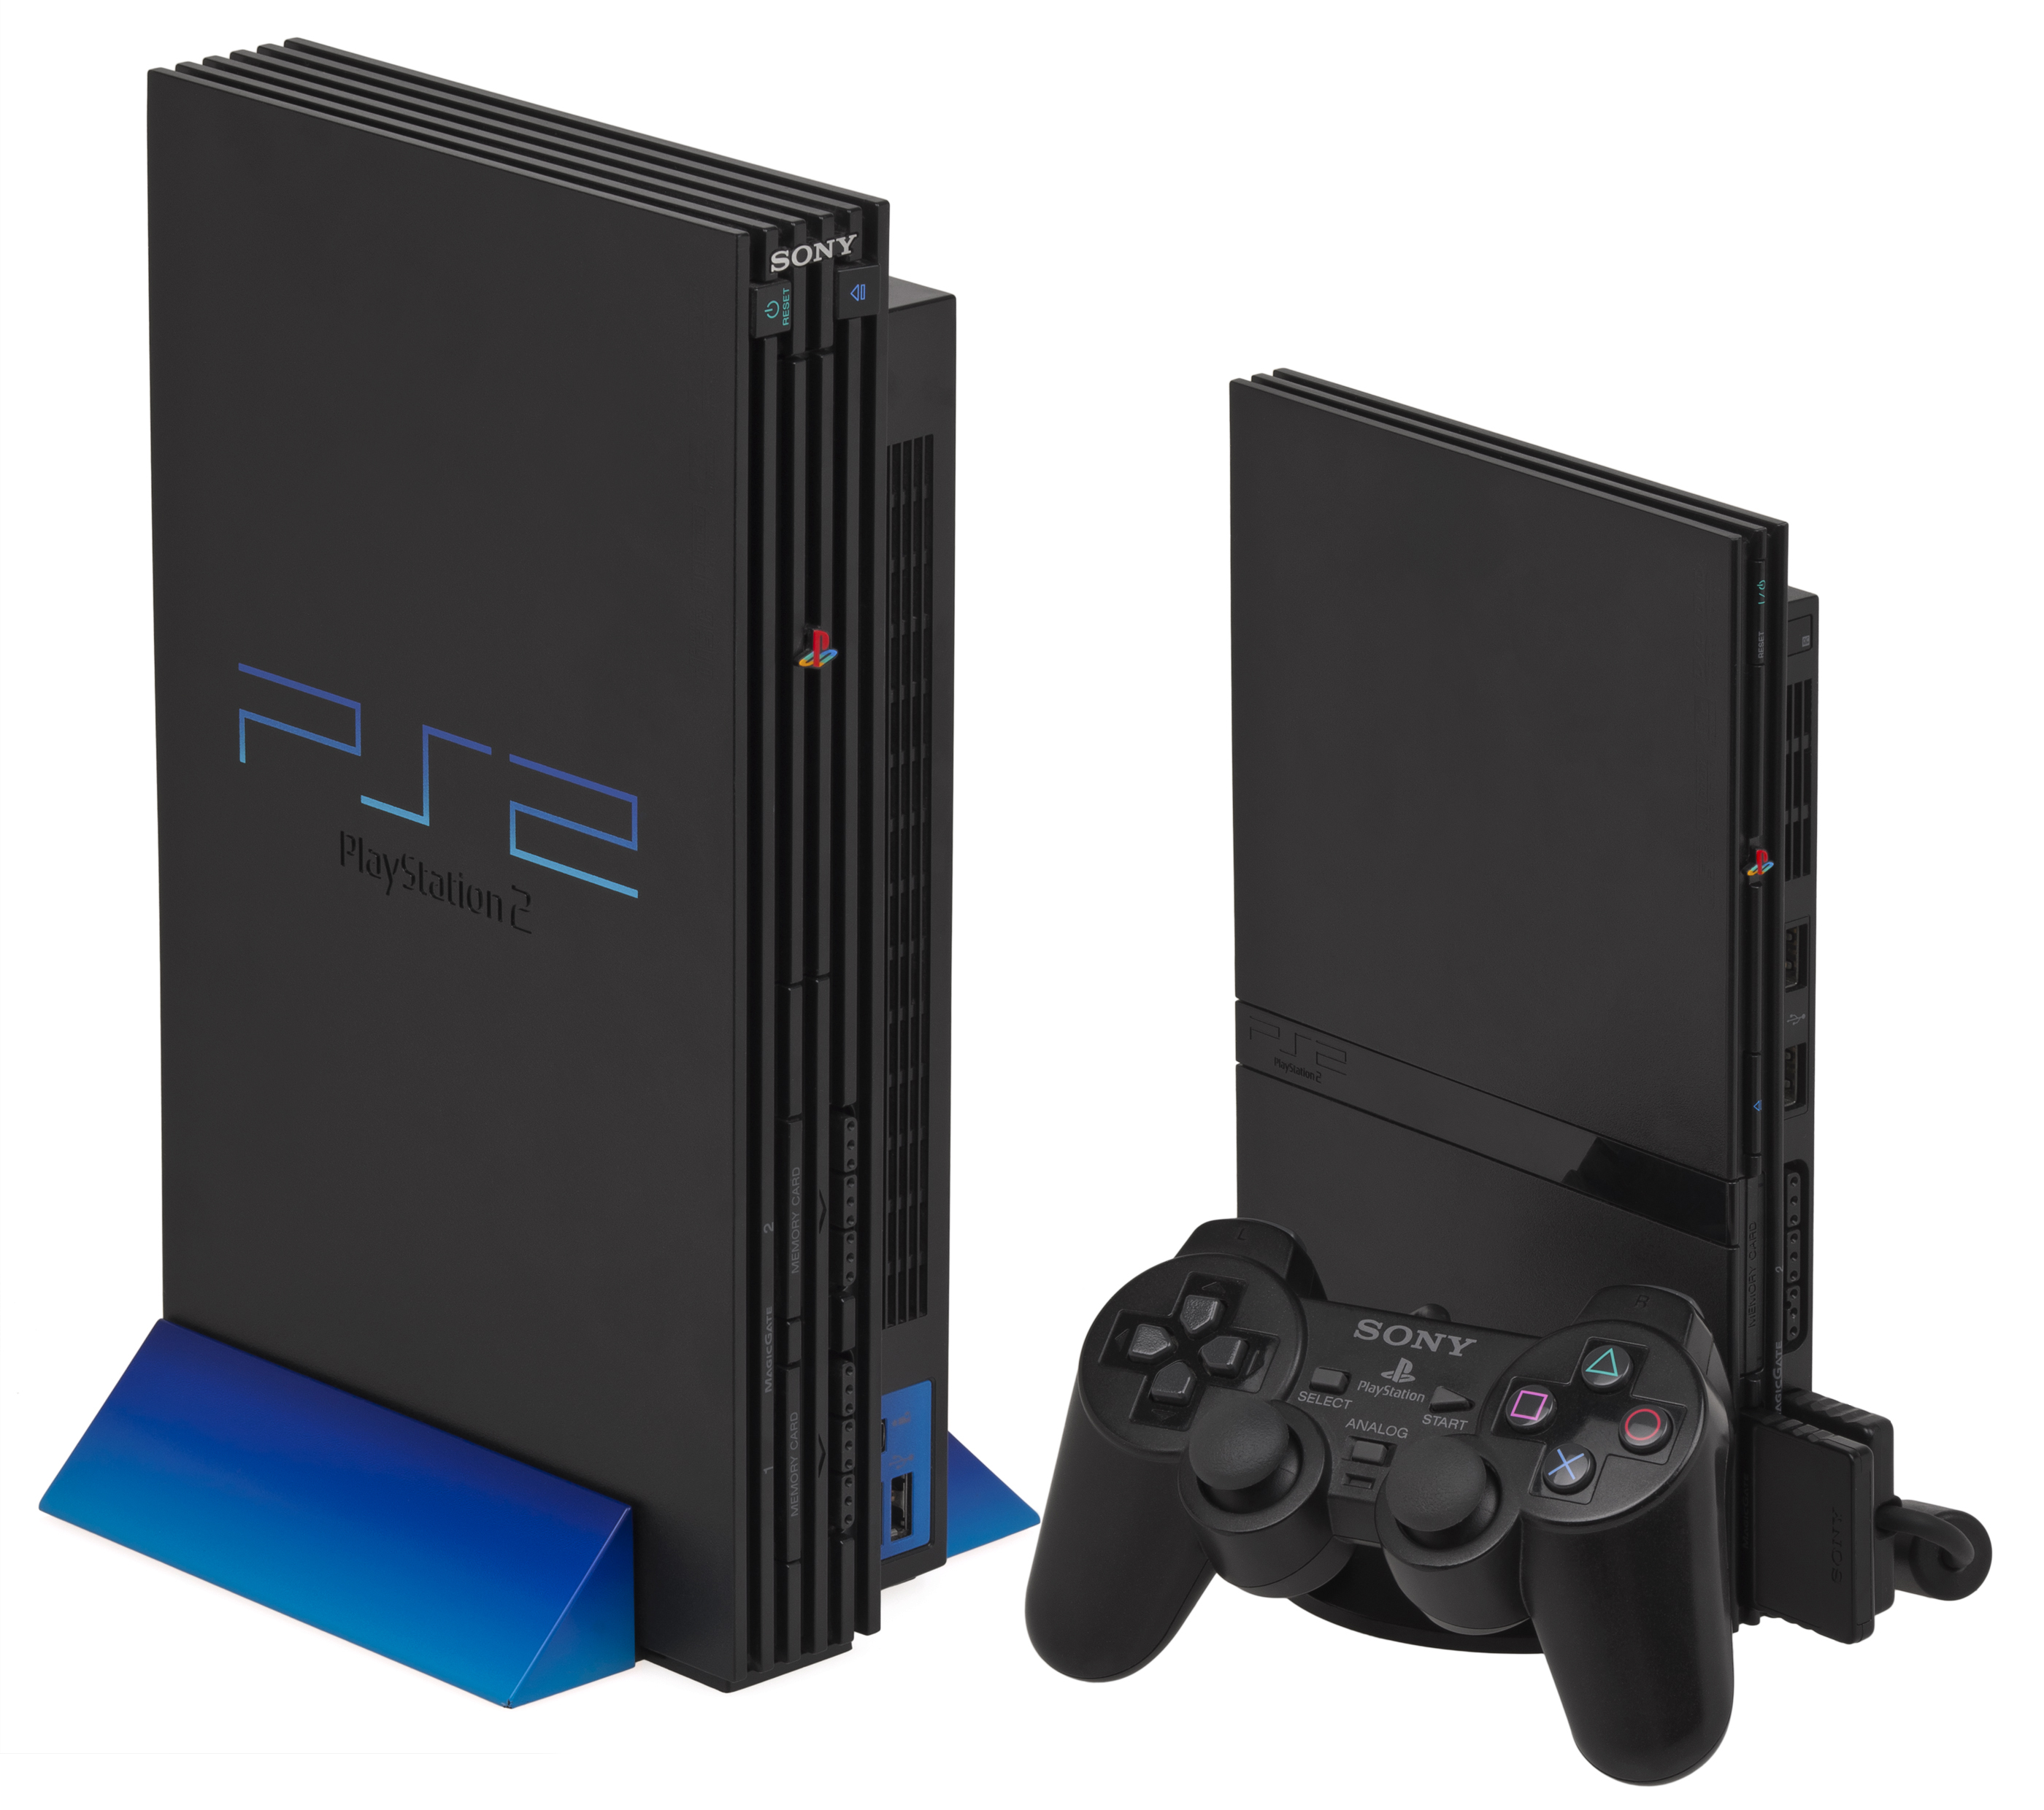 PlayStation 2 - Wikipedia